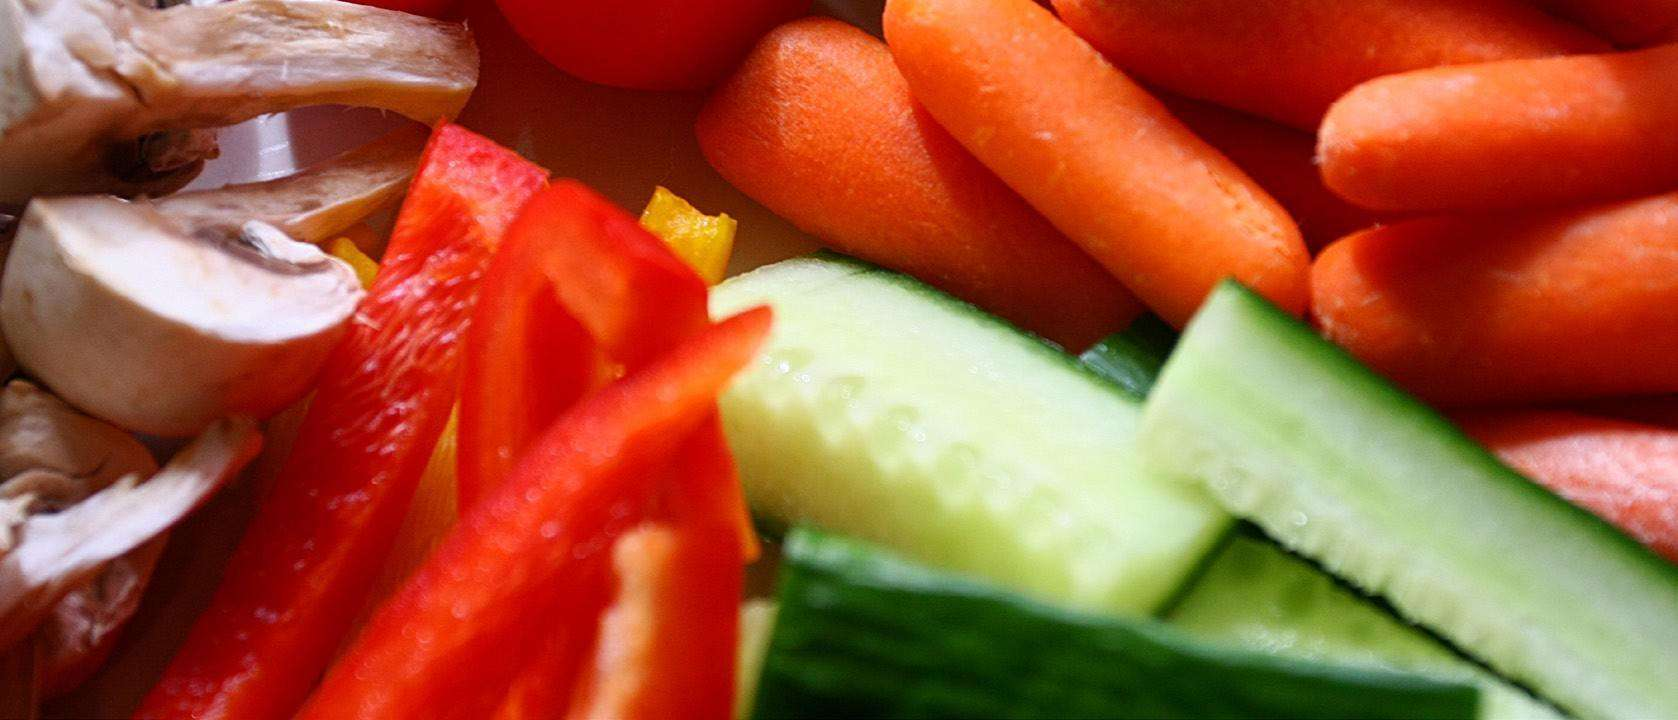 Cut up vegetables